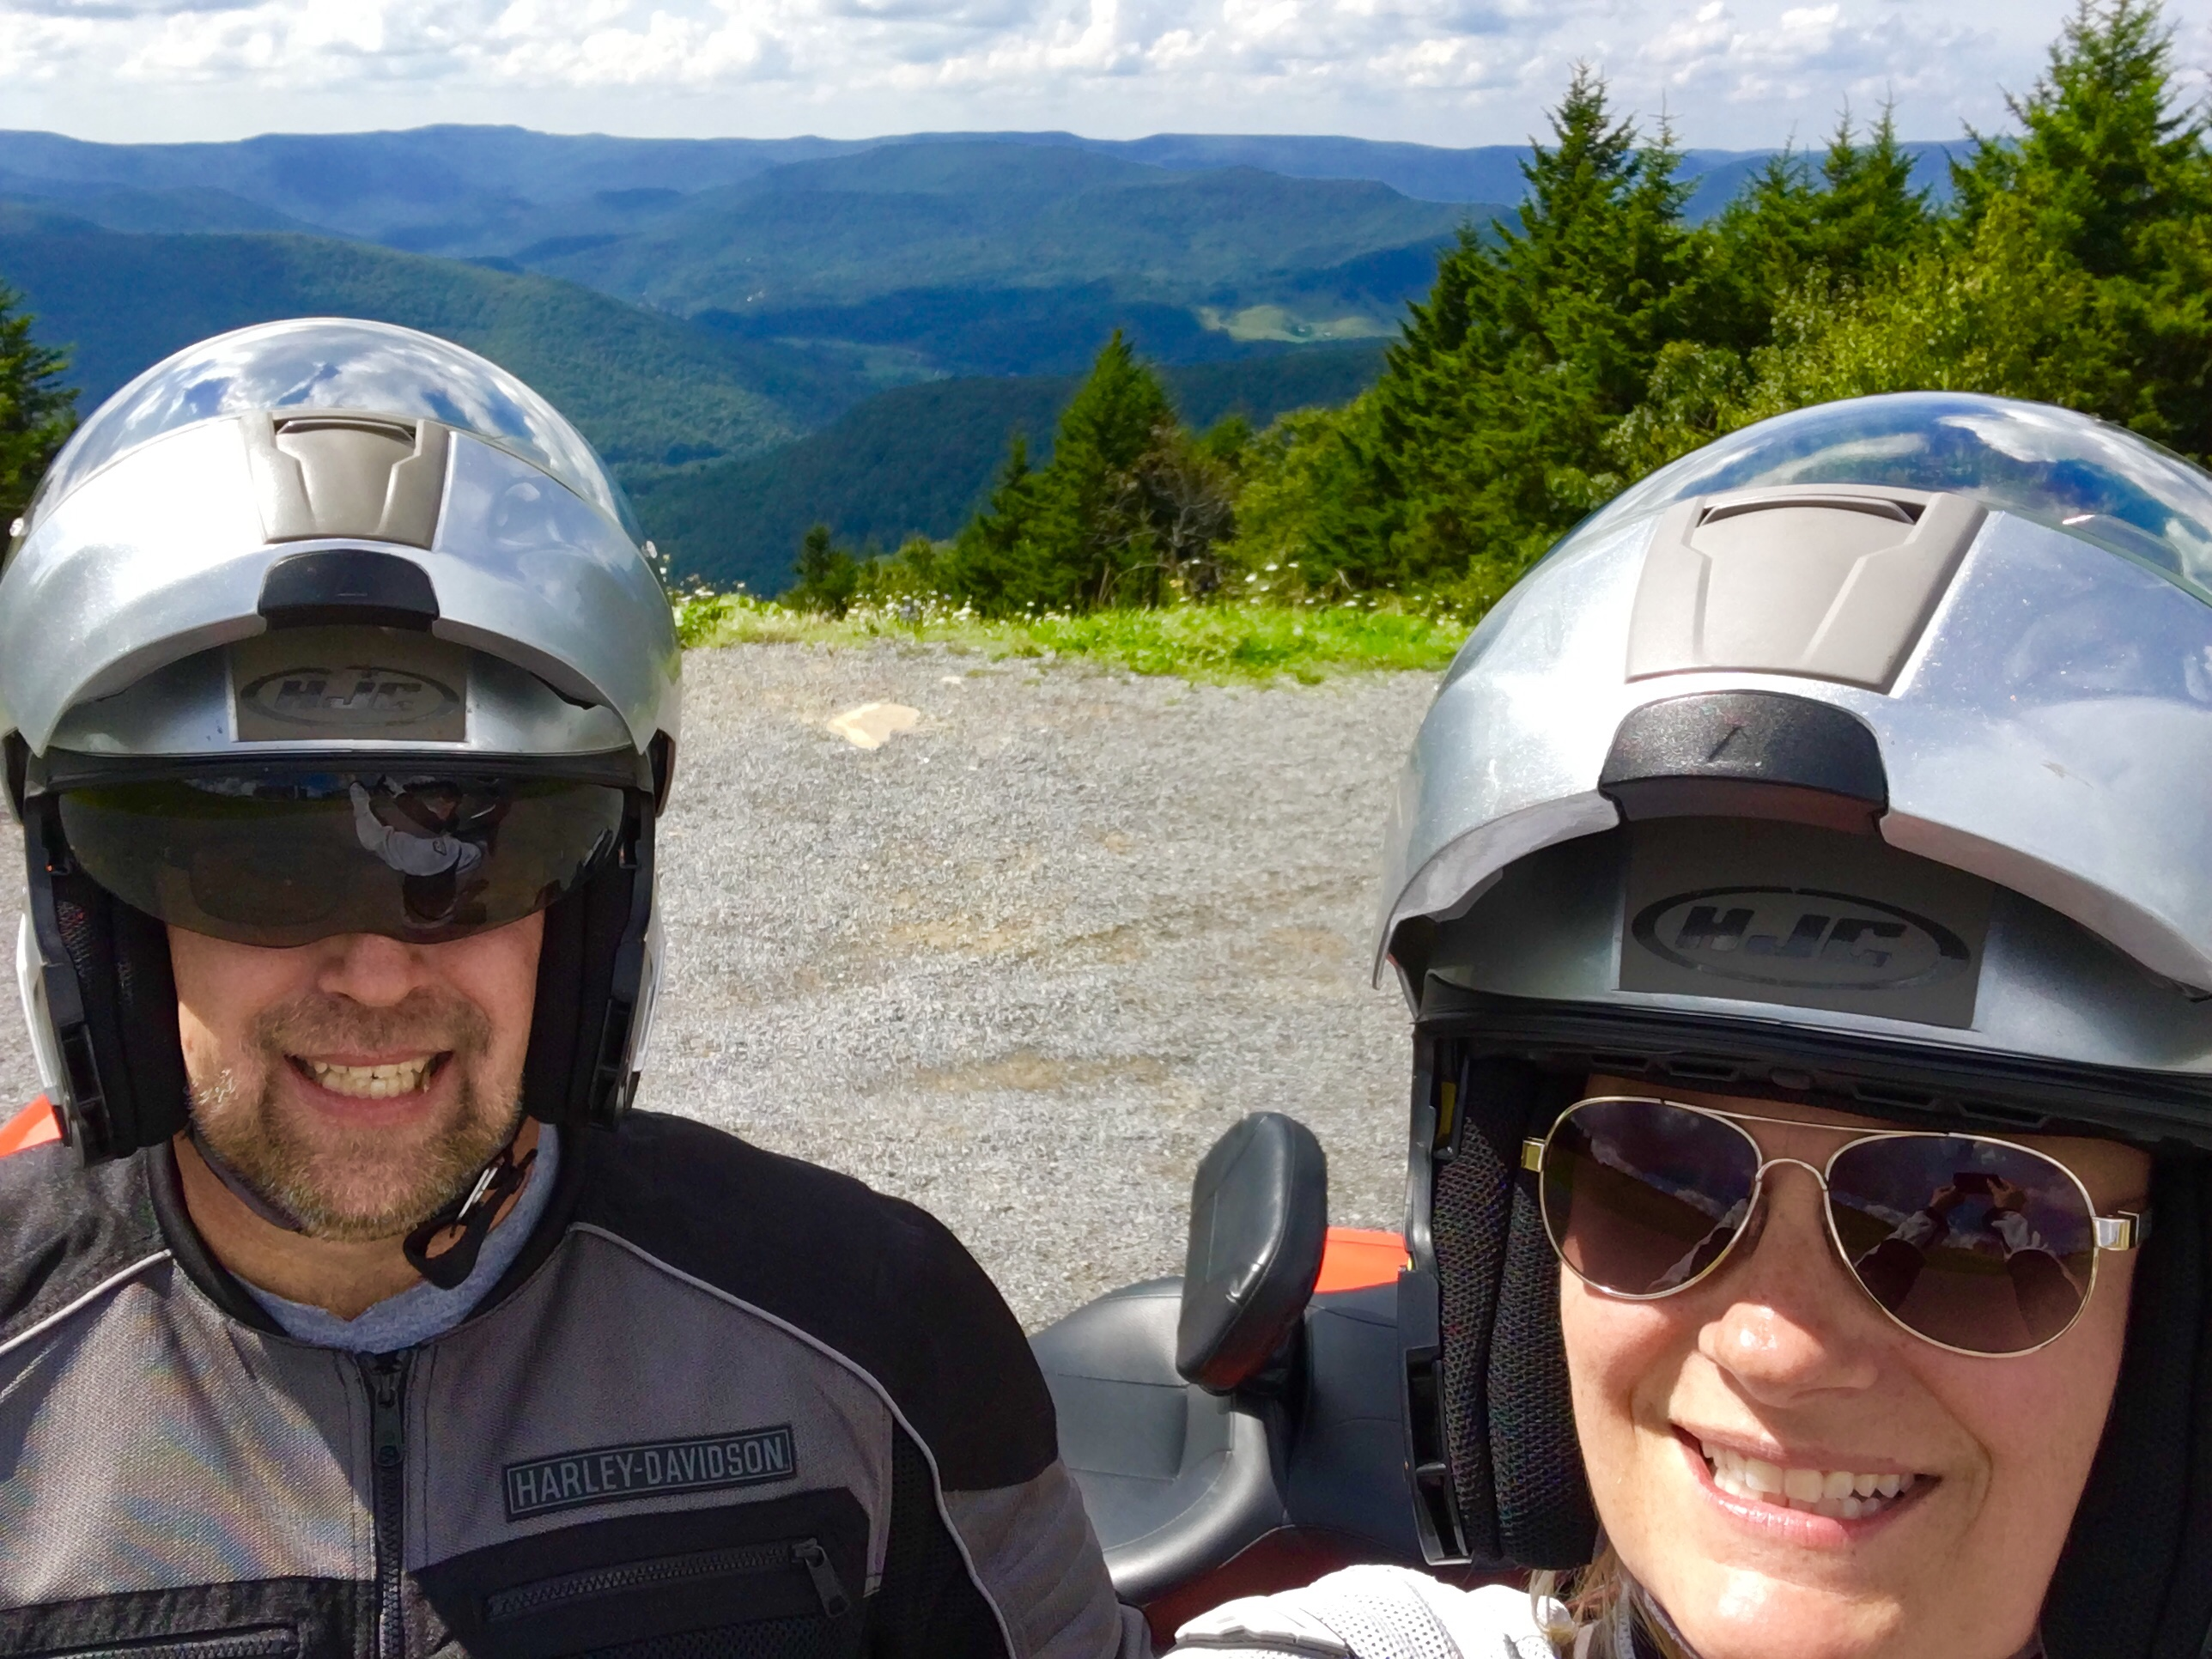 David and Amy Cox motorcycling through the Appalachian Mountains